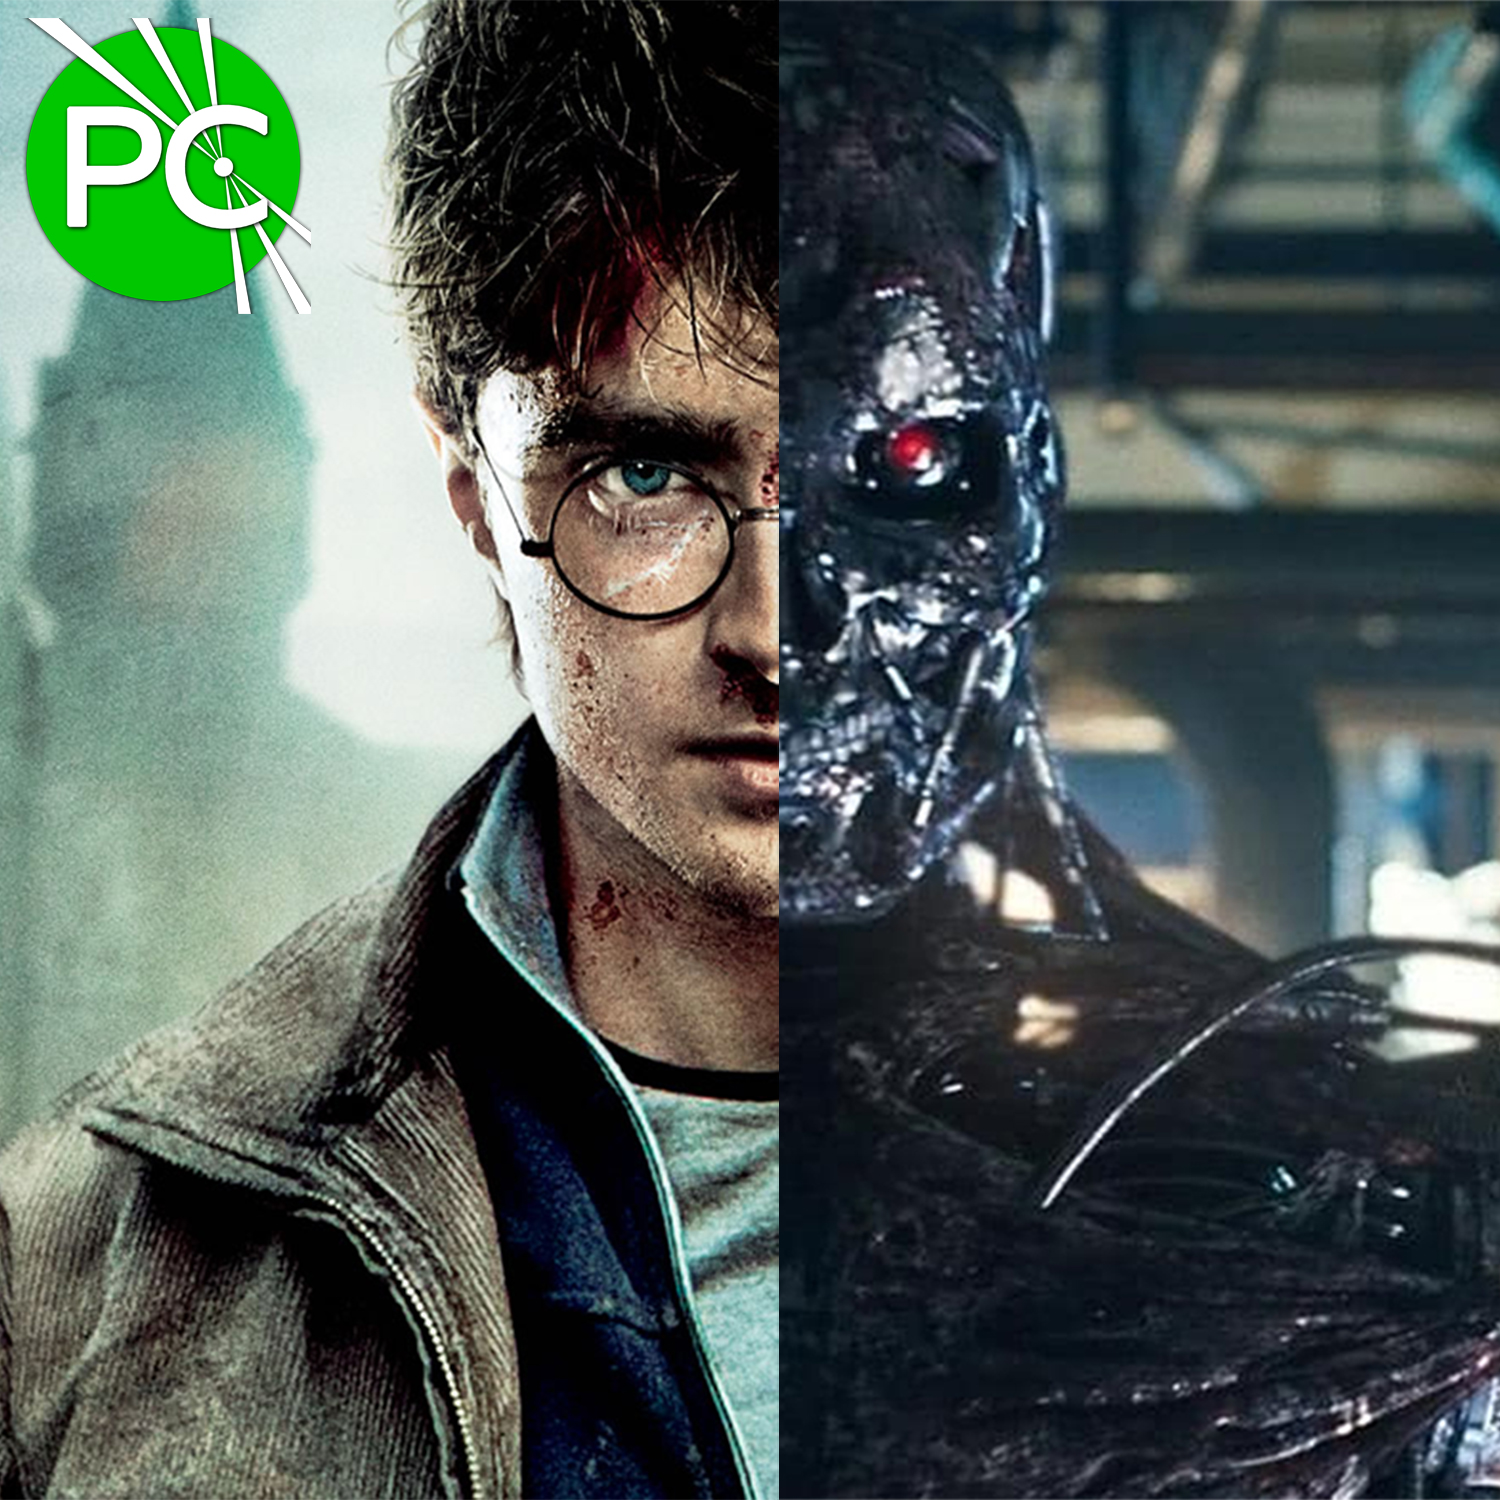 Episode 007 – Harry Potter Terminator Mashup 3 of 3